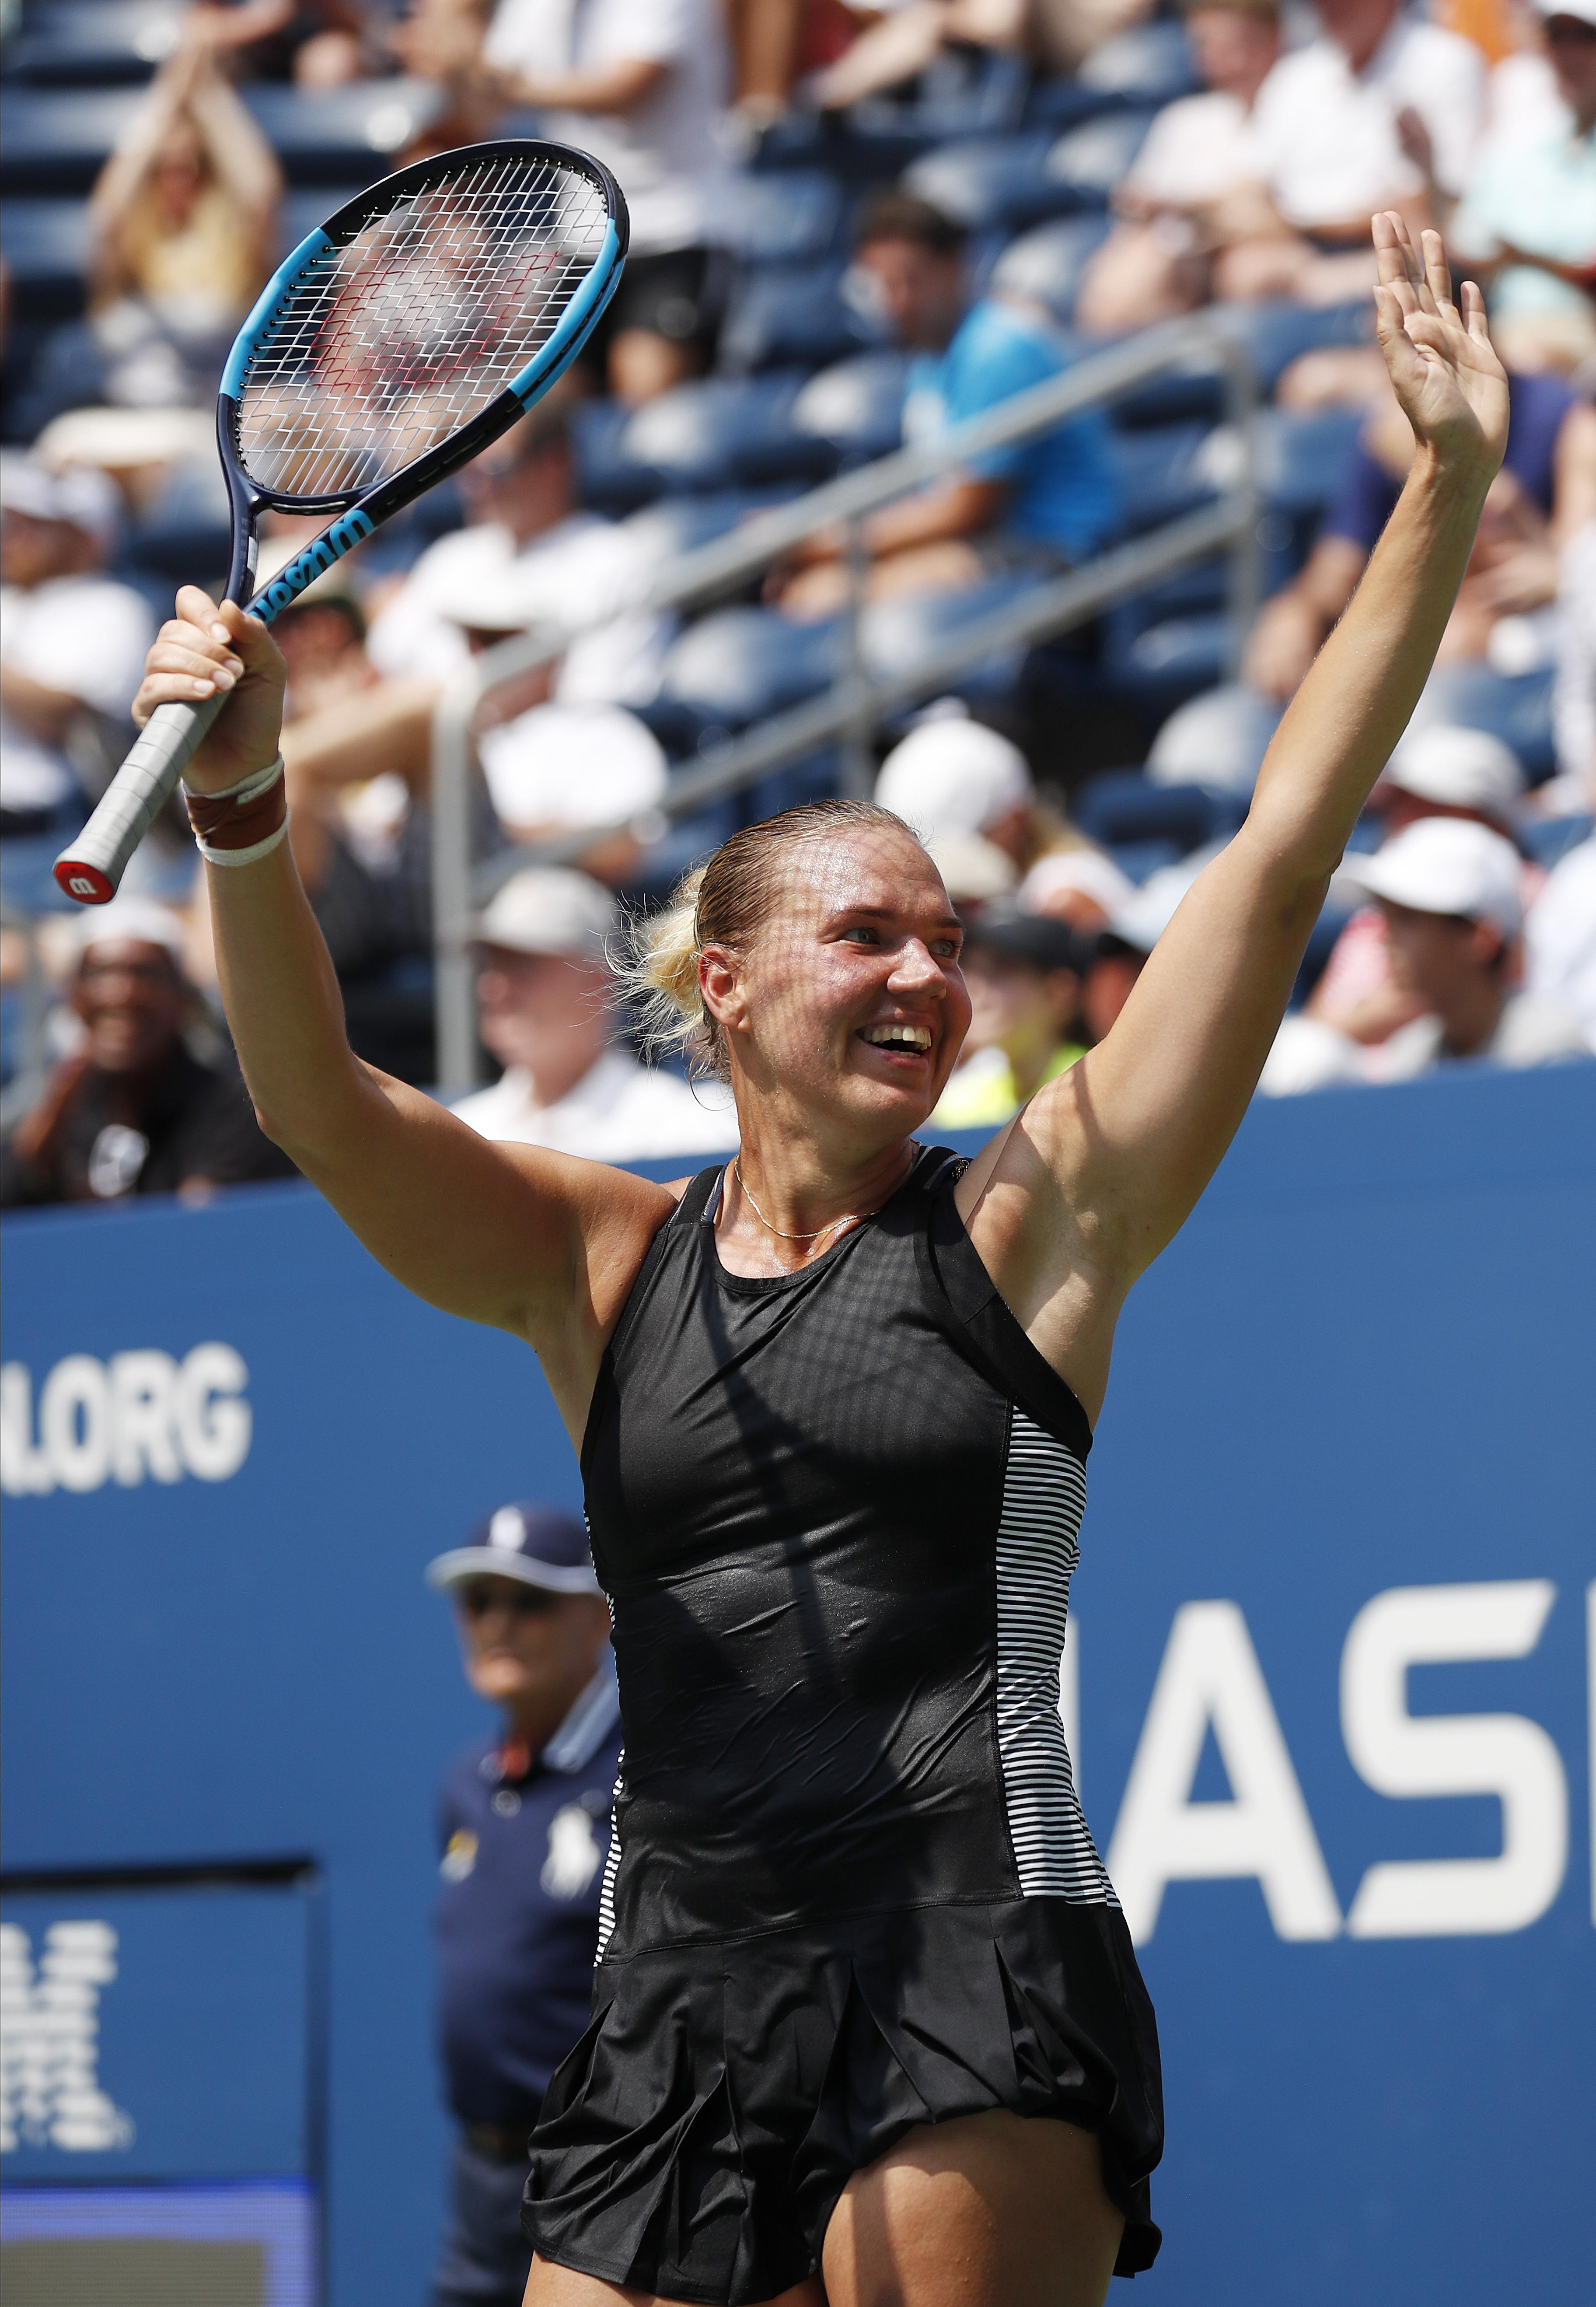 Kanepi, 33, reacts after knocking out world number one Halep at Flushing Meadows